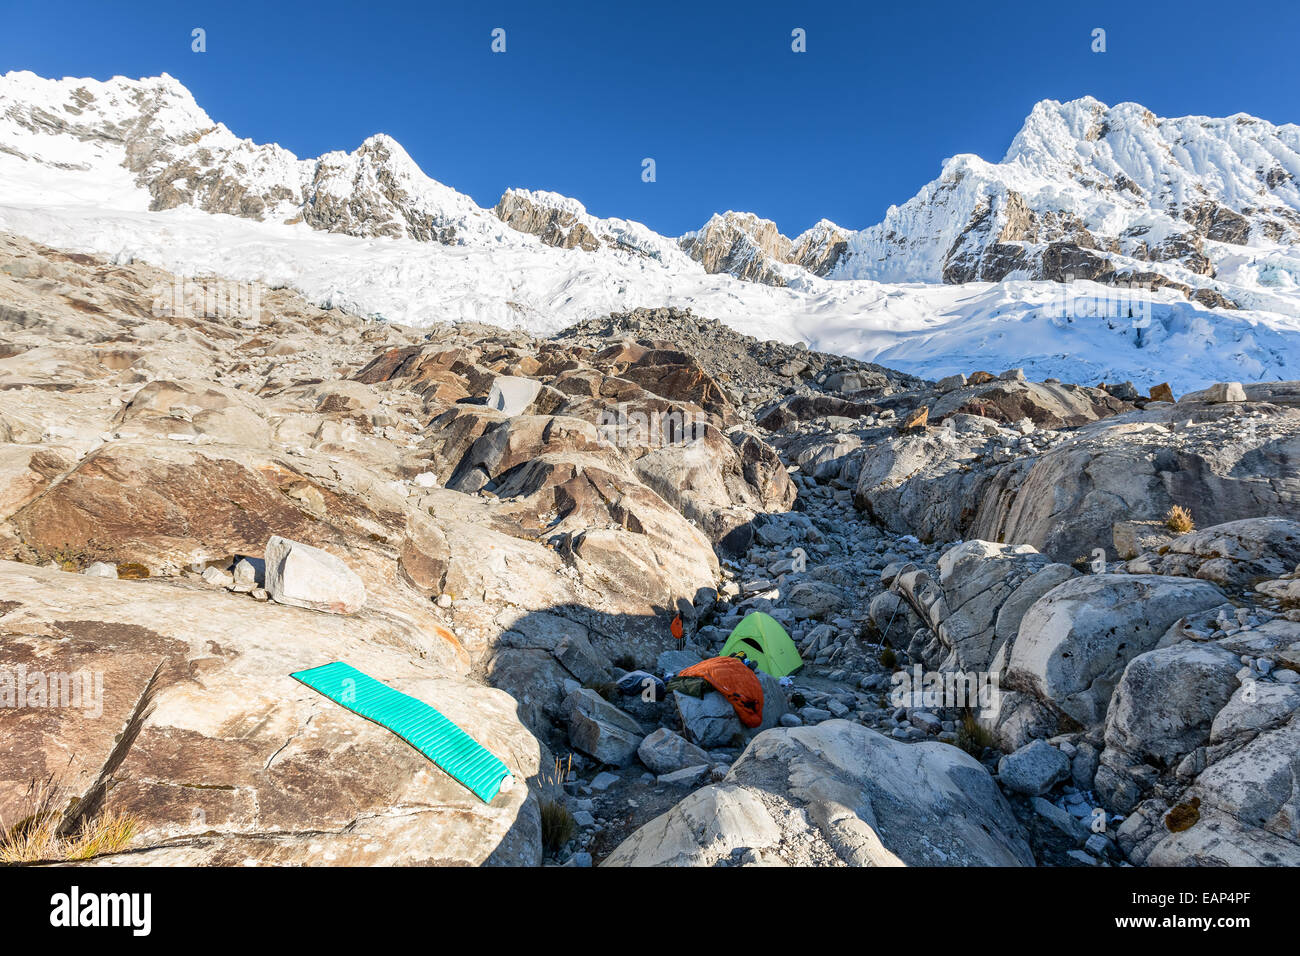 Alpamayo's Moraine camp, Santa Cruz valley, Andes, Peru, South America - Stock Image